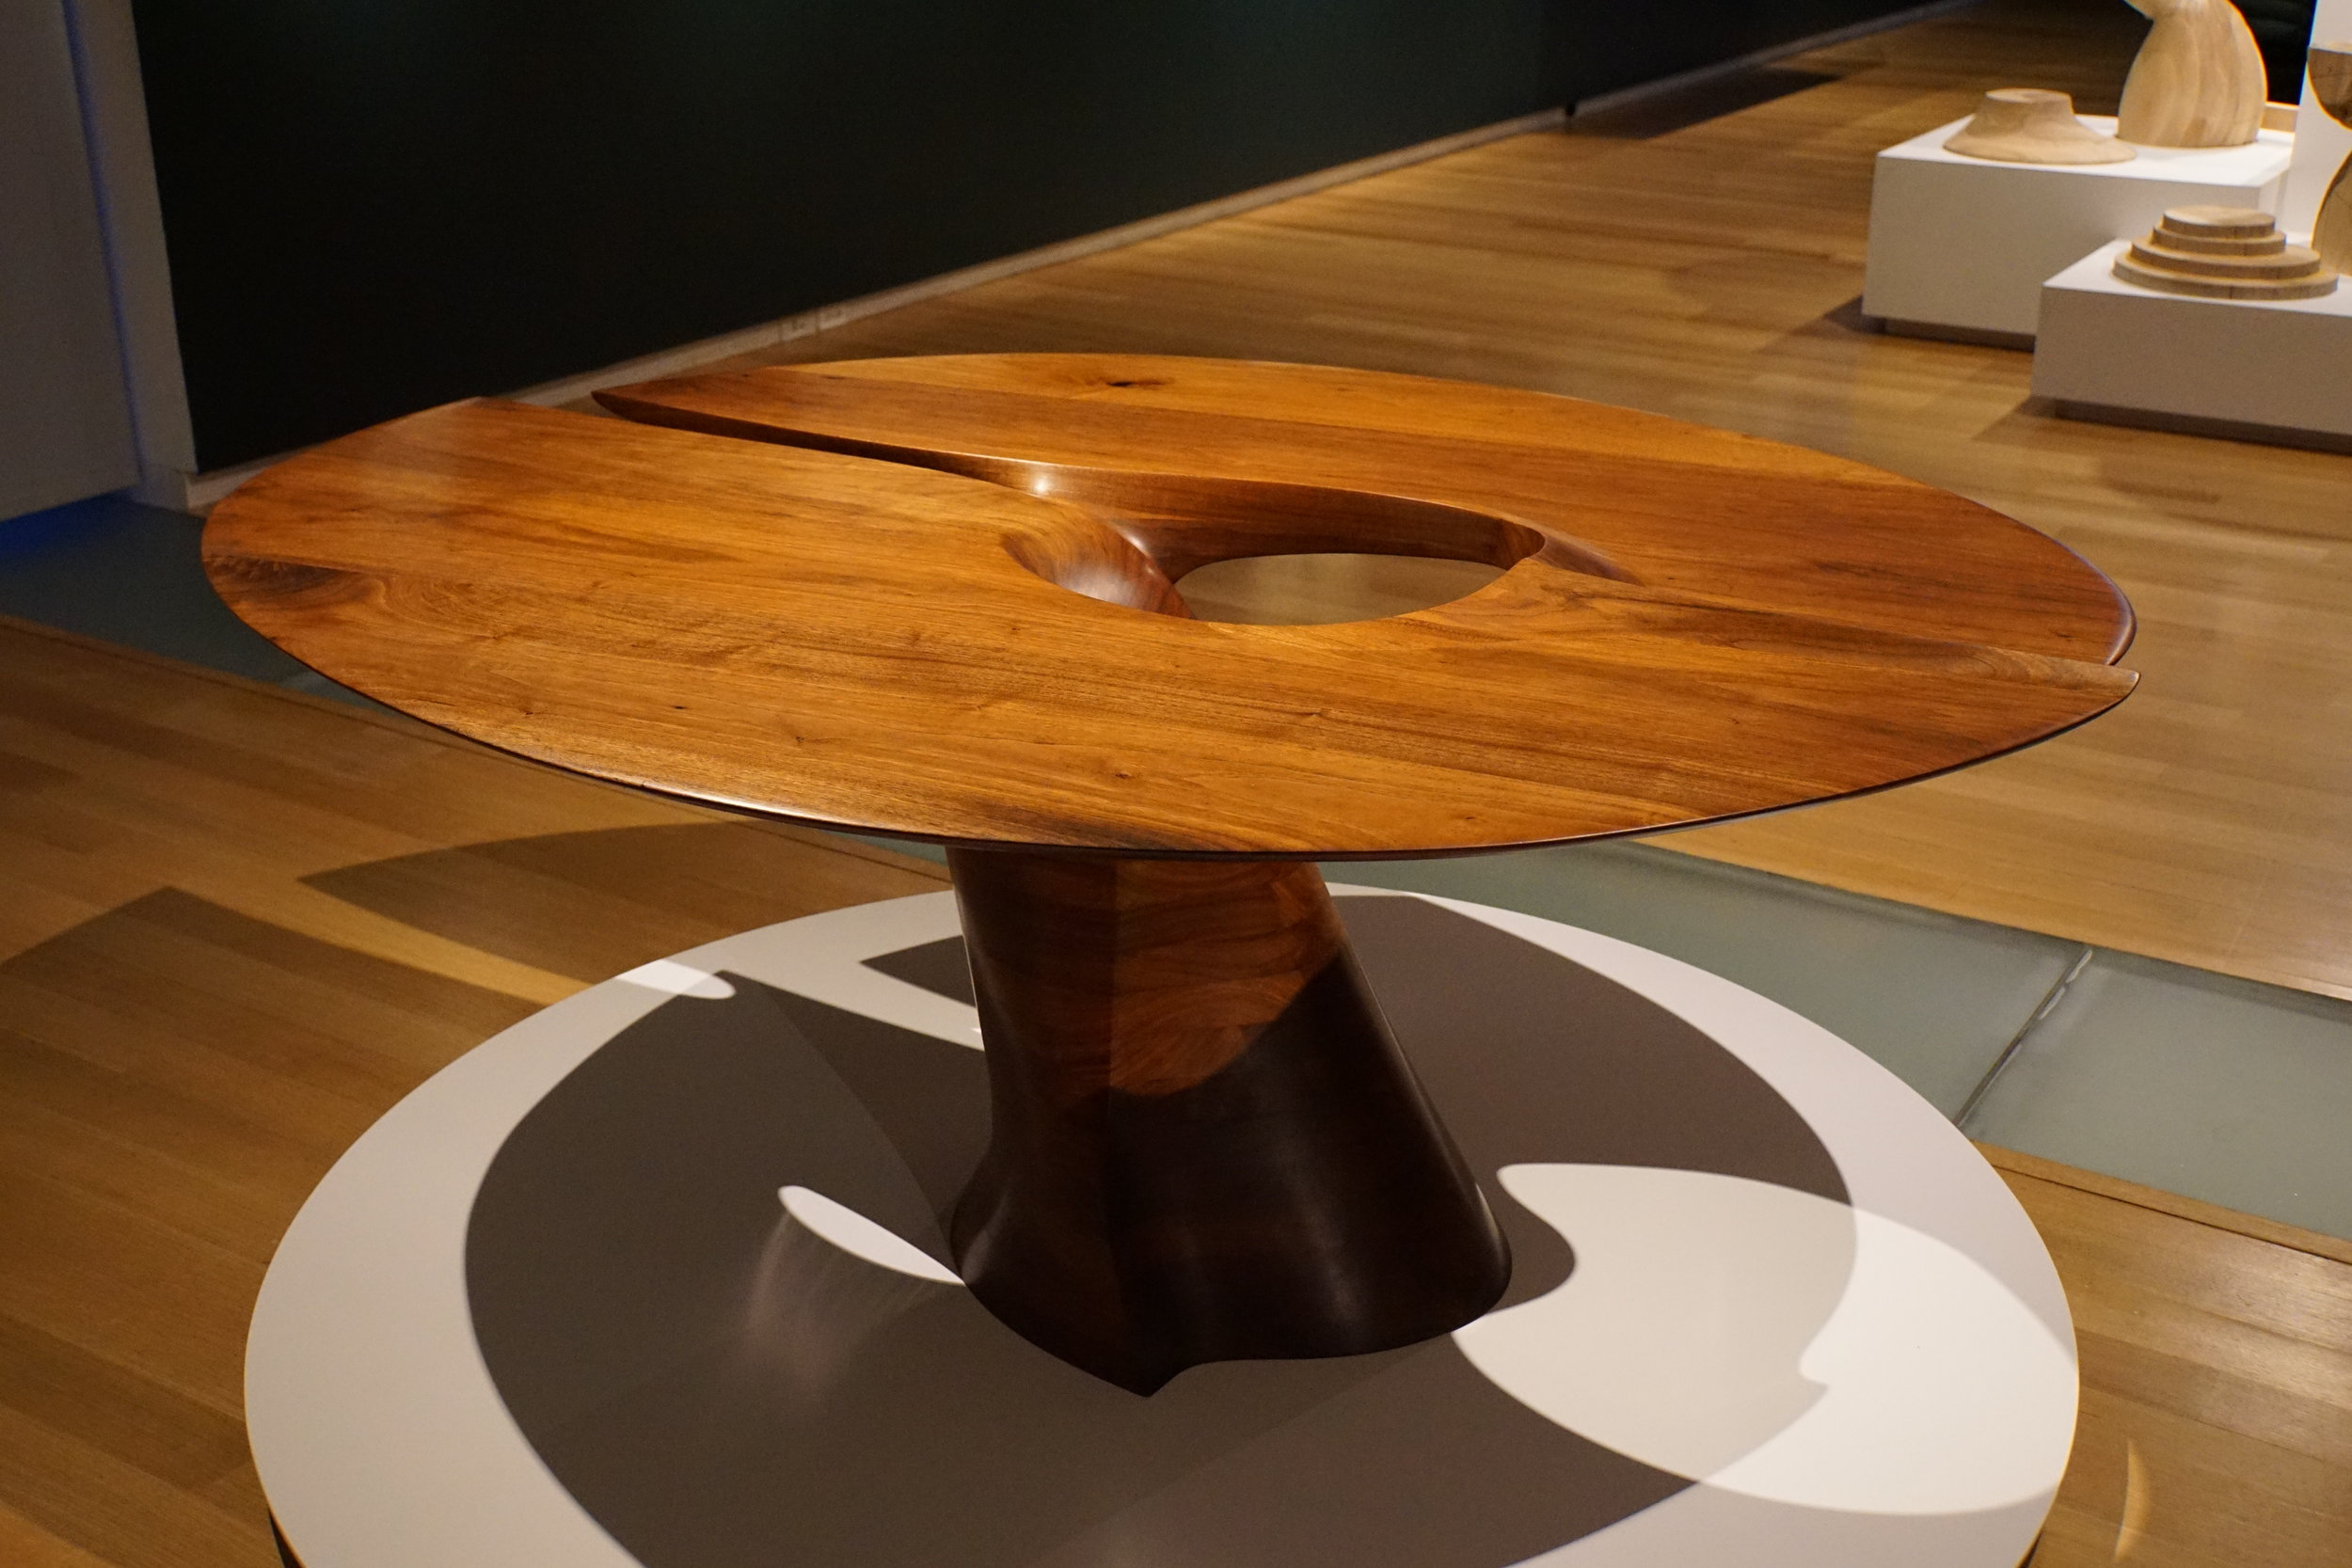 An amazing table by Wendell Castle.